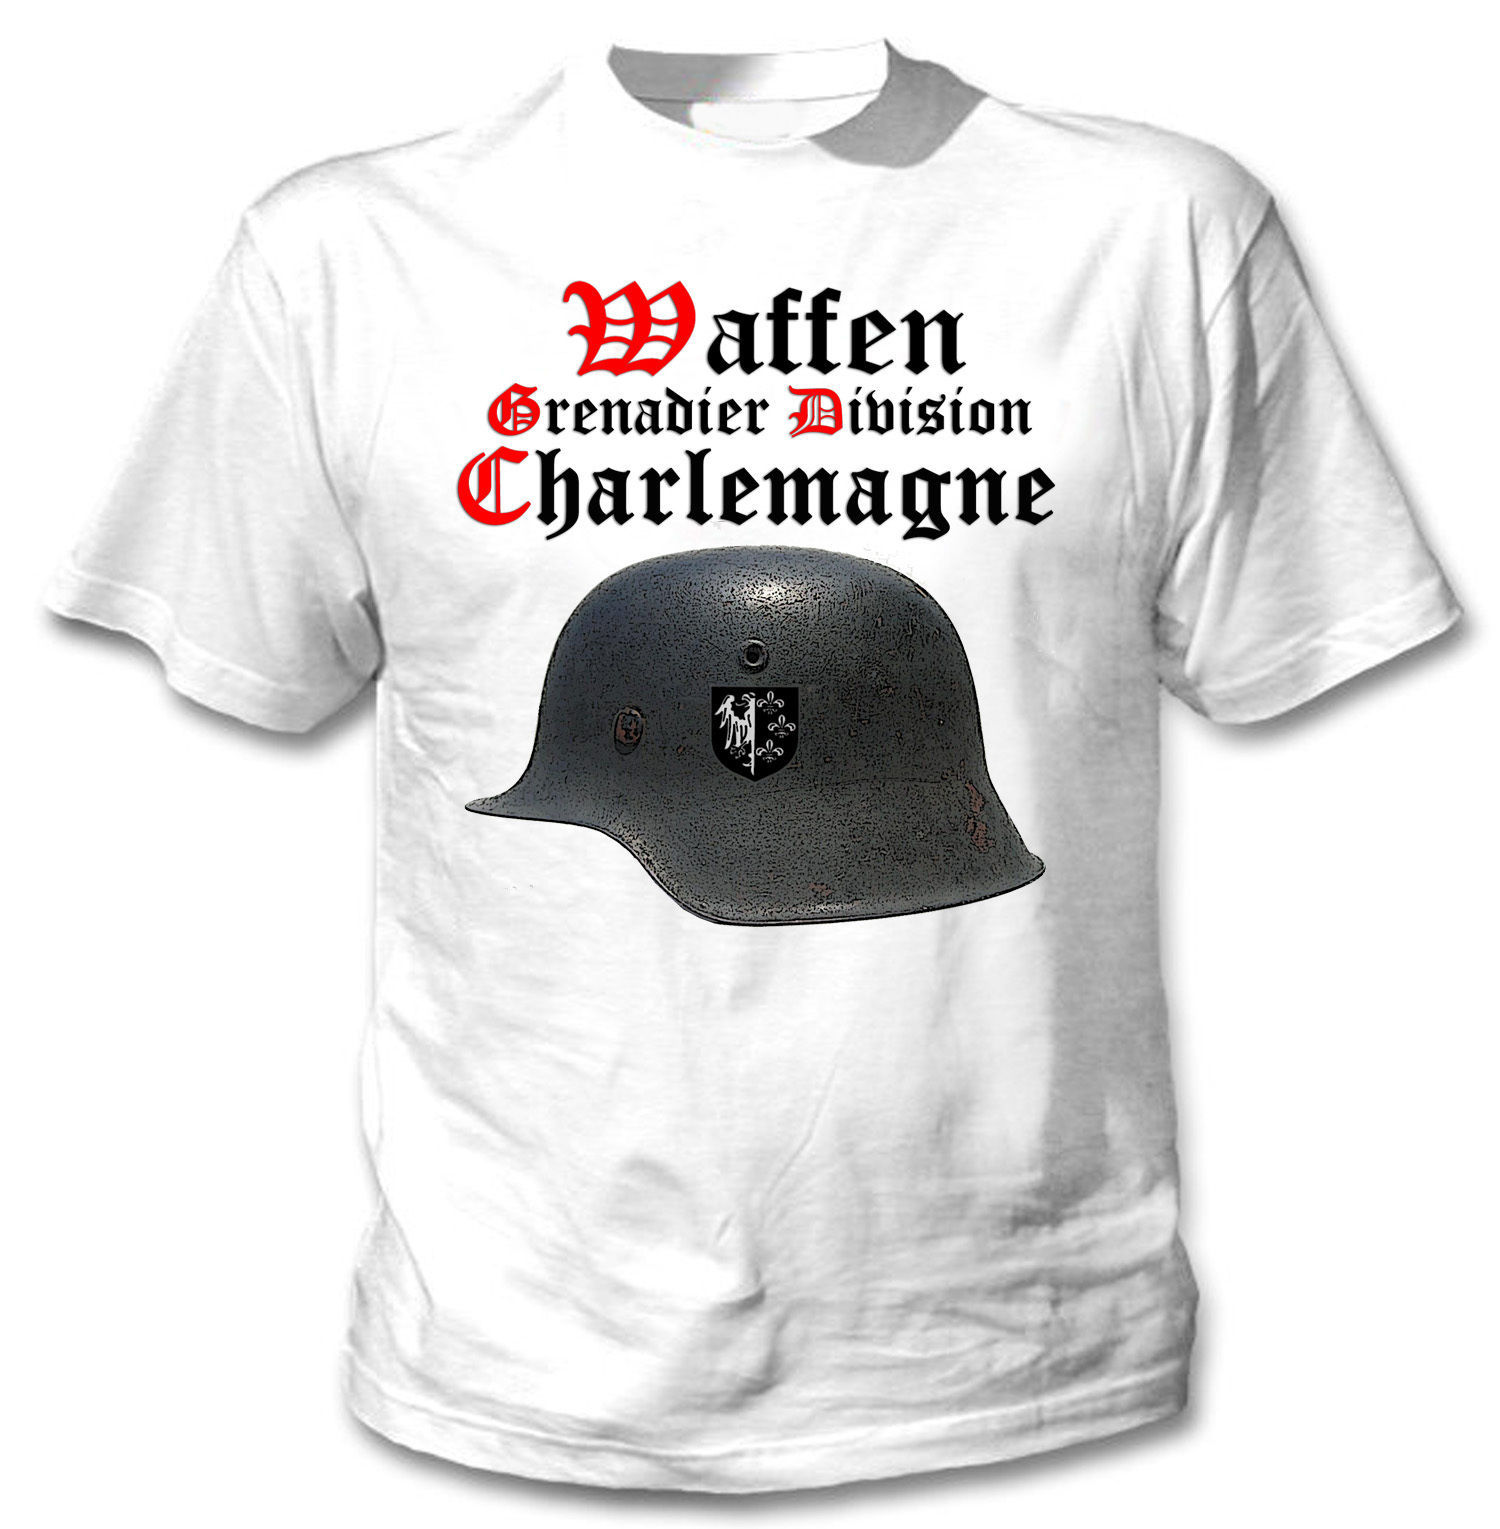 Primary image for WAFFEN GRENADIER DIVISION CHARLEMAGNE - NEW AMAZING GRAPHIC TSHIRT